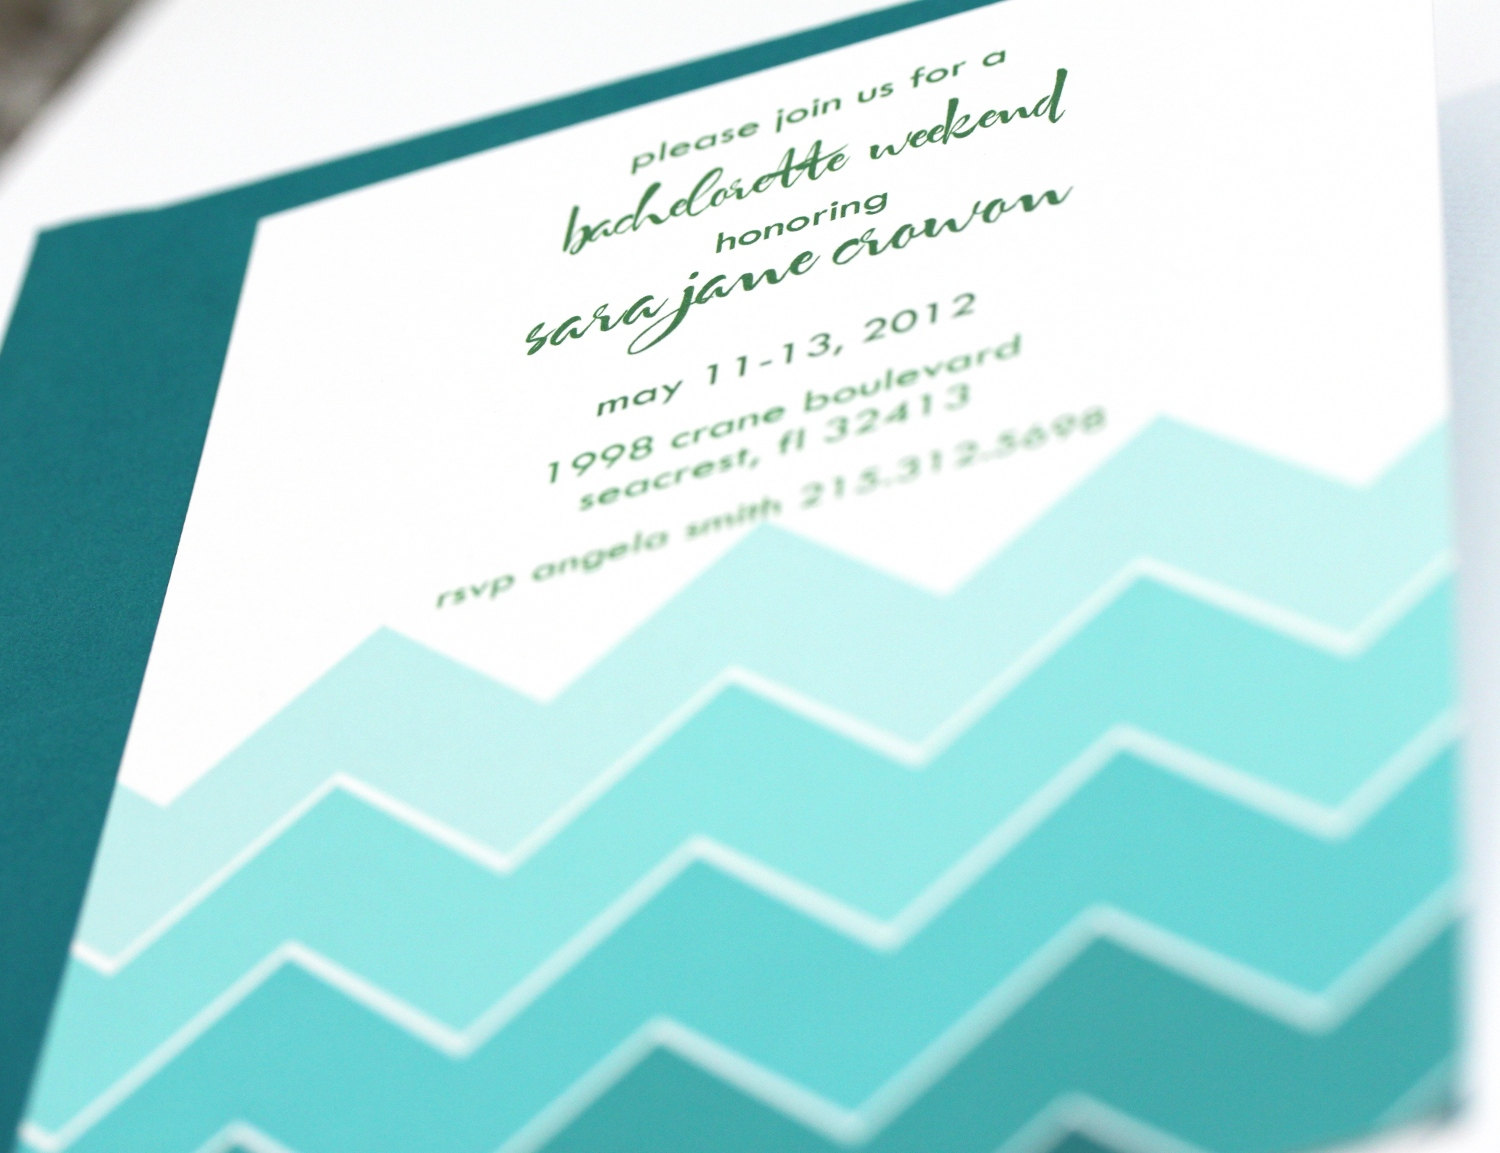 Ombre Wedding Invitation: Merry Me Events: Merry Monday : Ombre Chic…